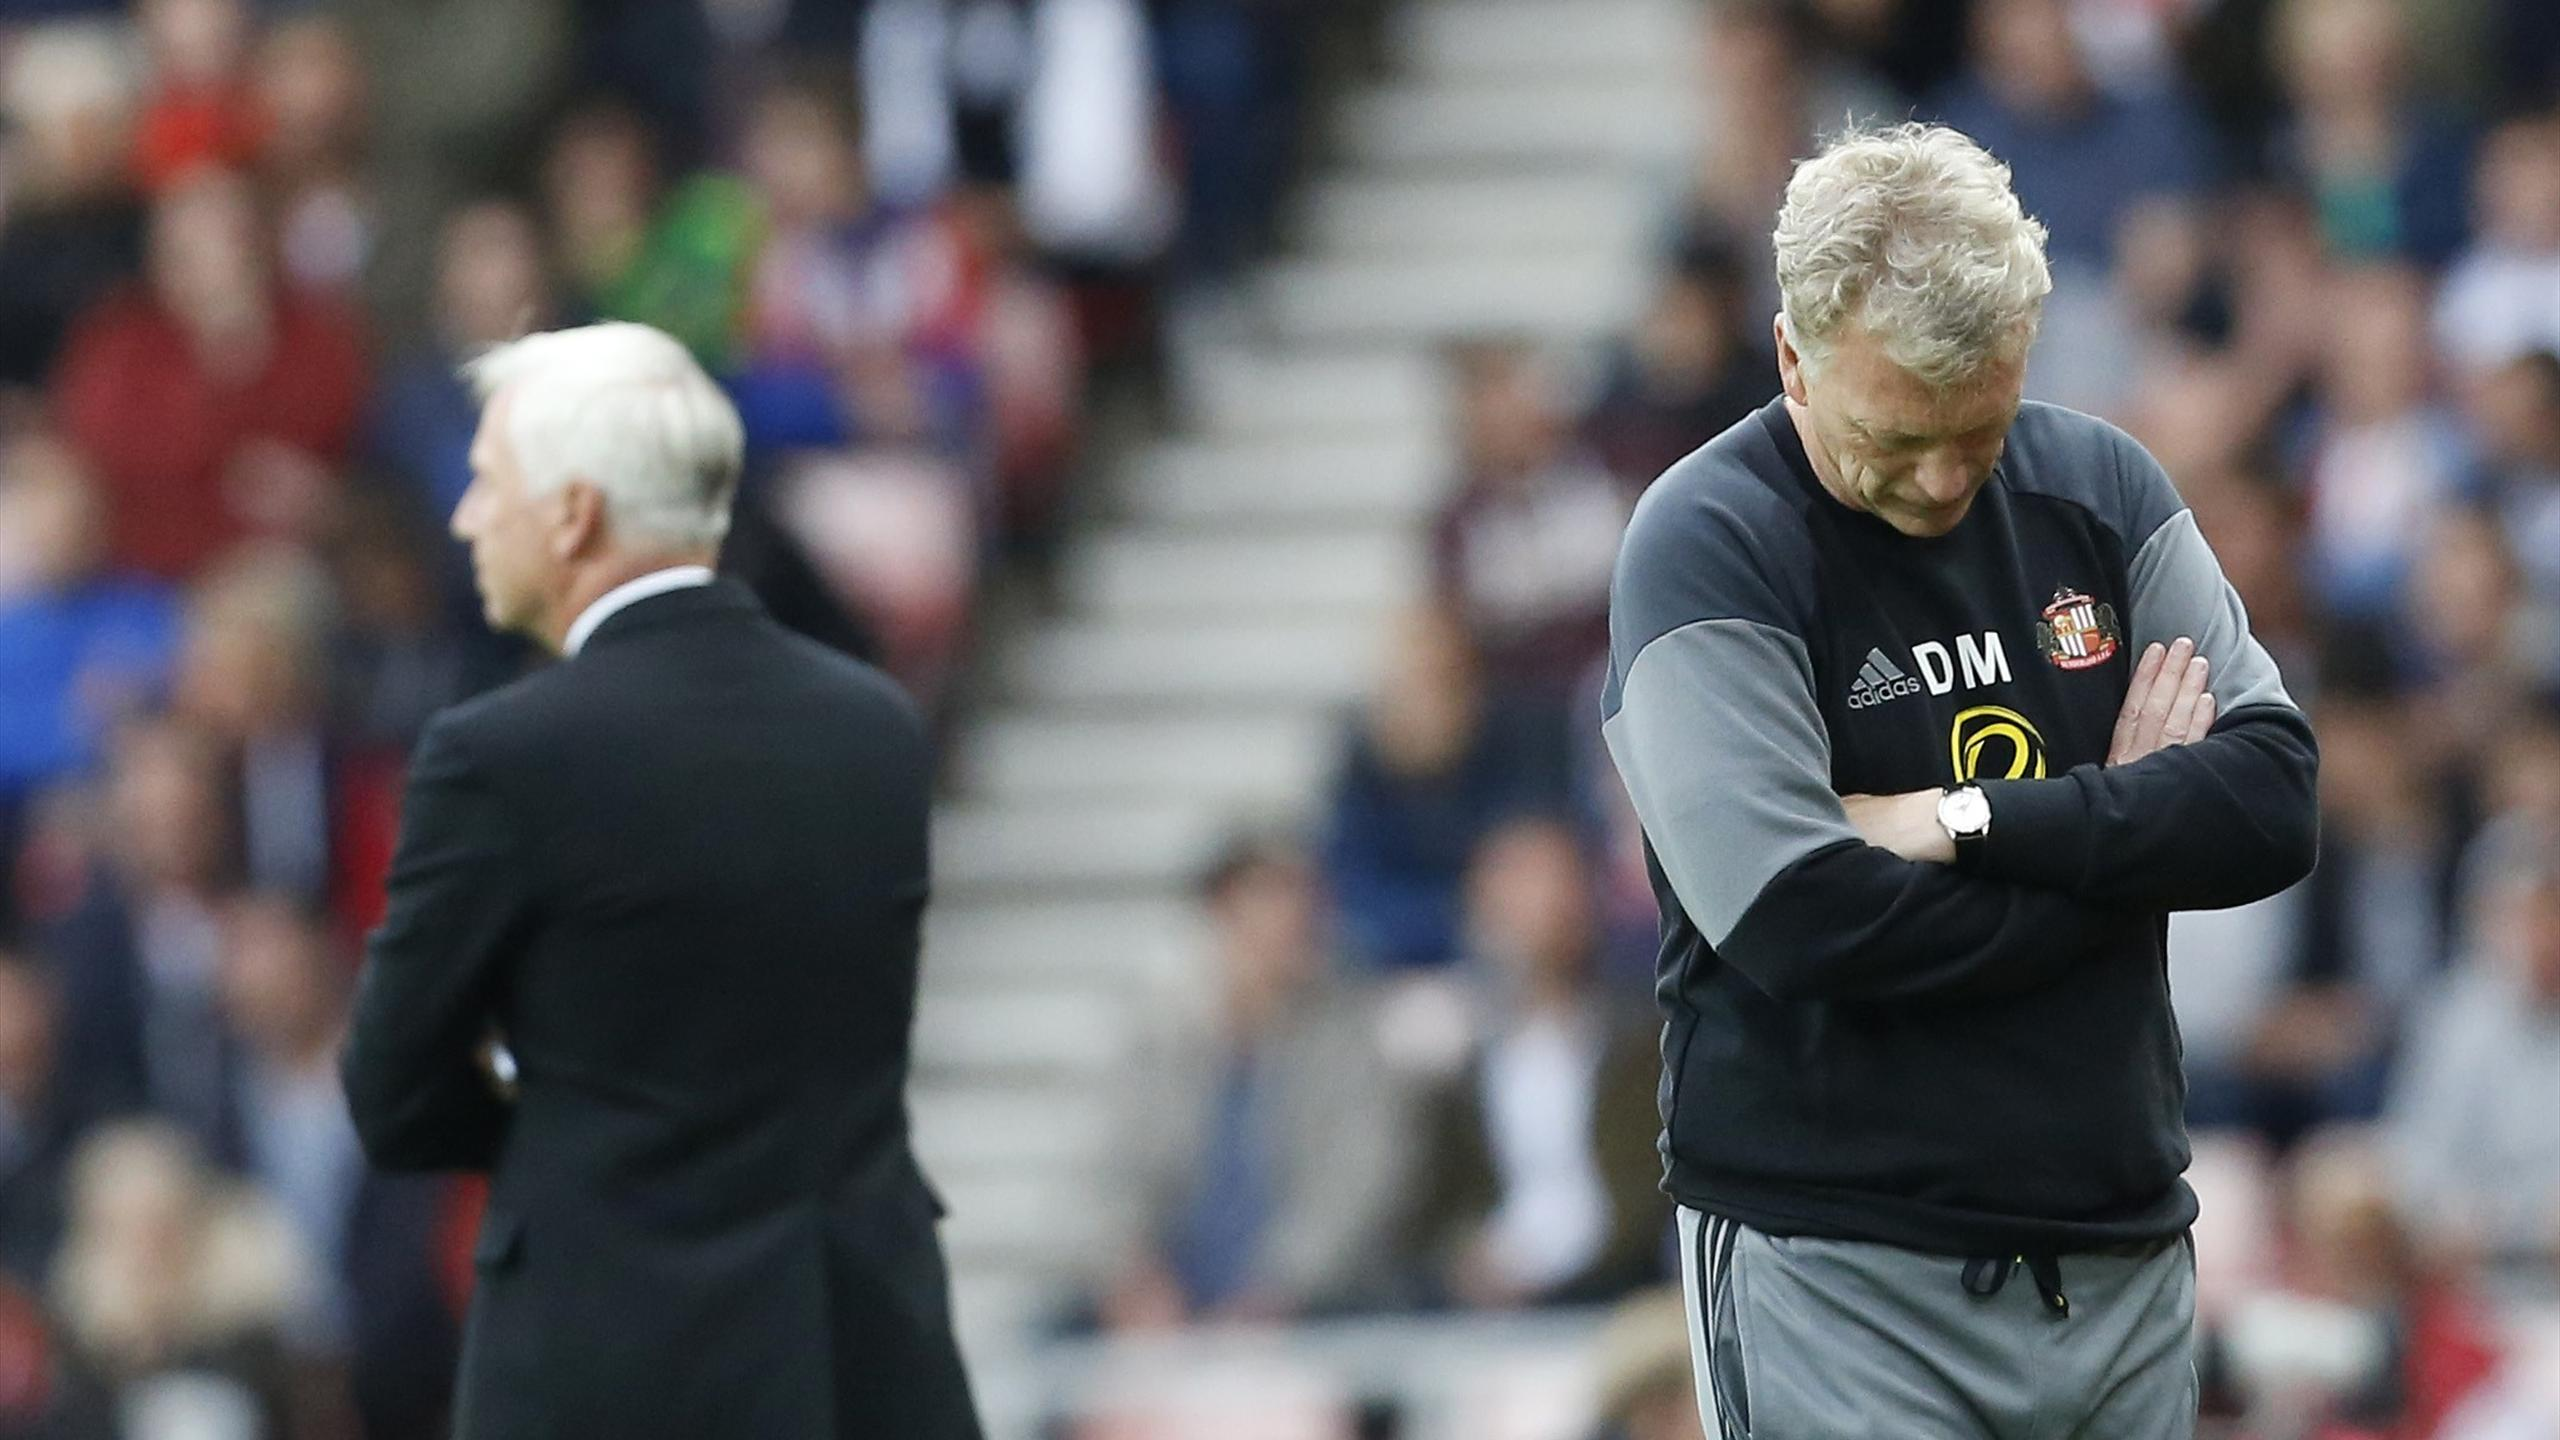 Sunderland manager David Moyes looks dejected as Crystal Palace manager Alan Pardew looks on